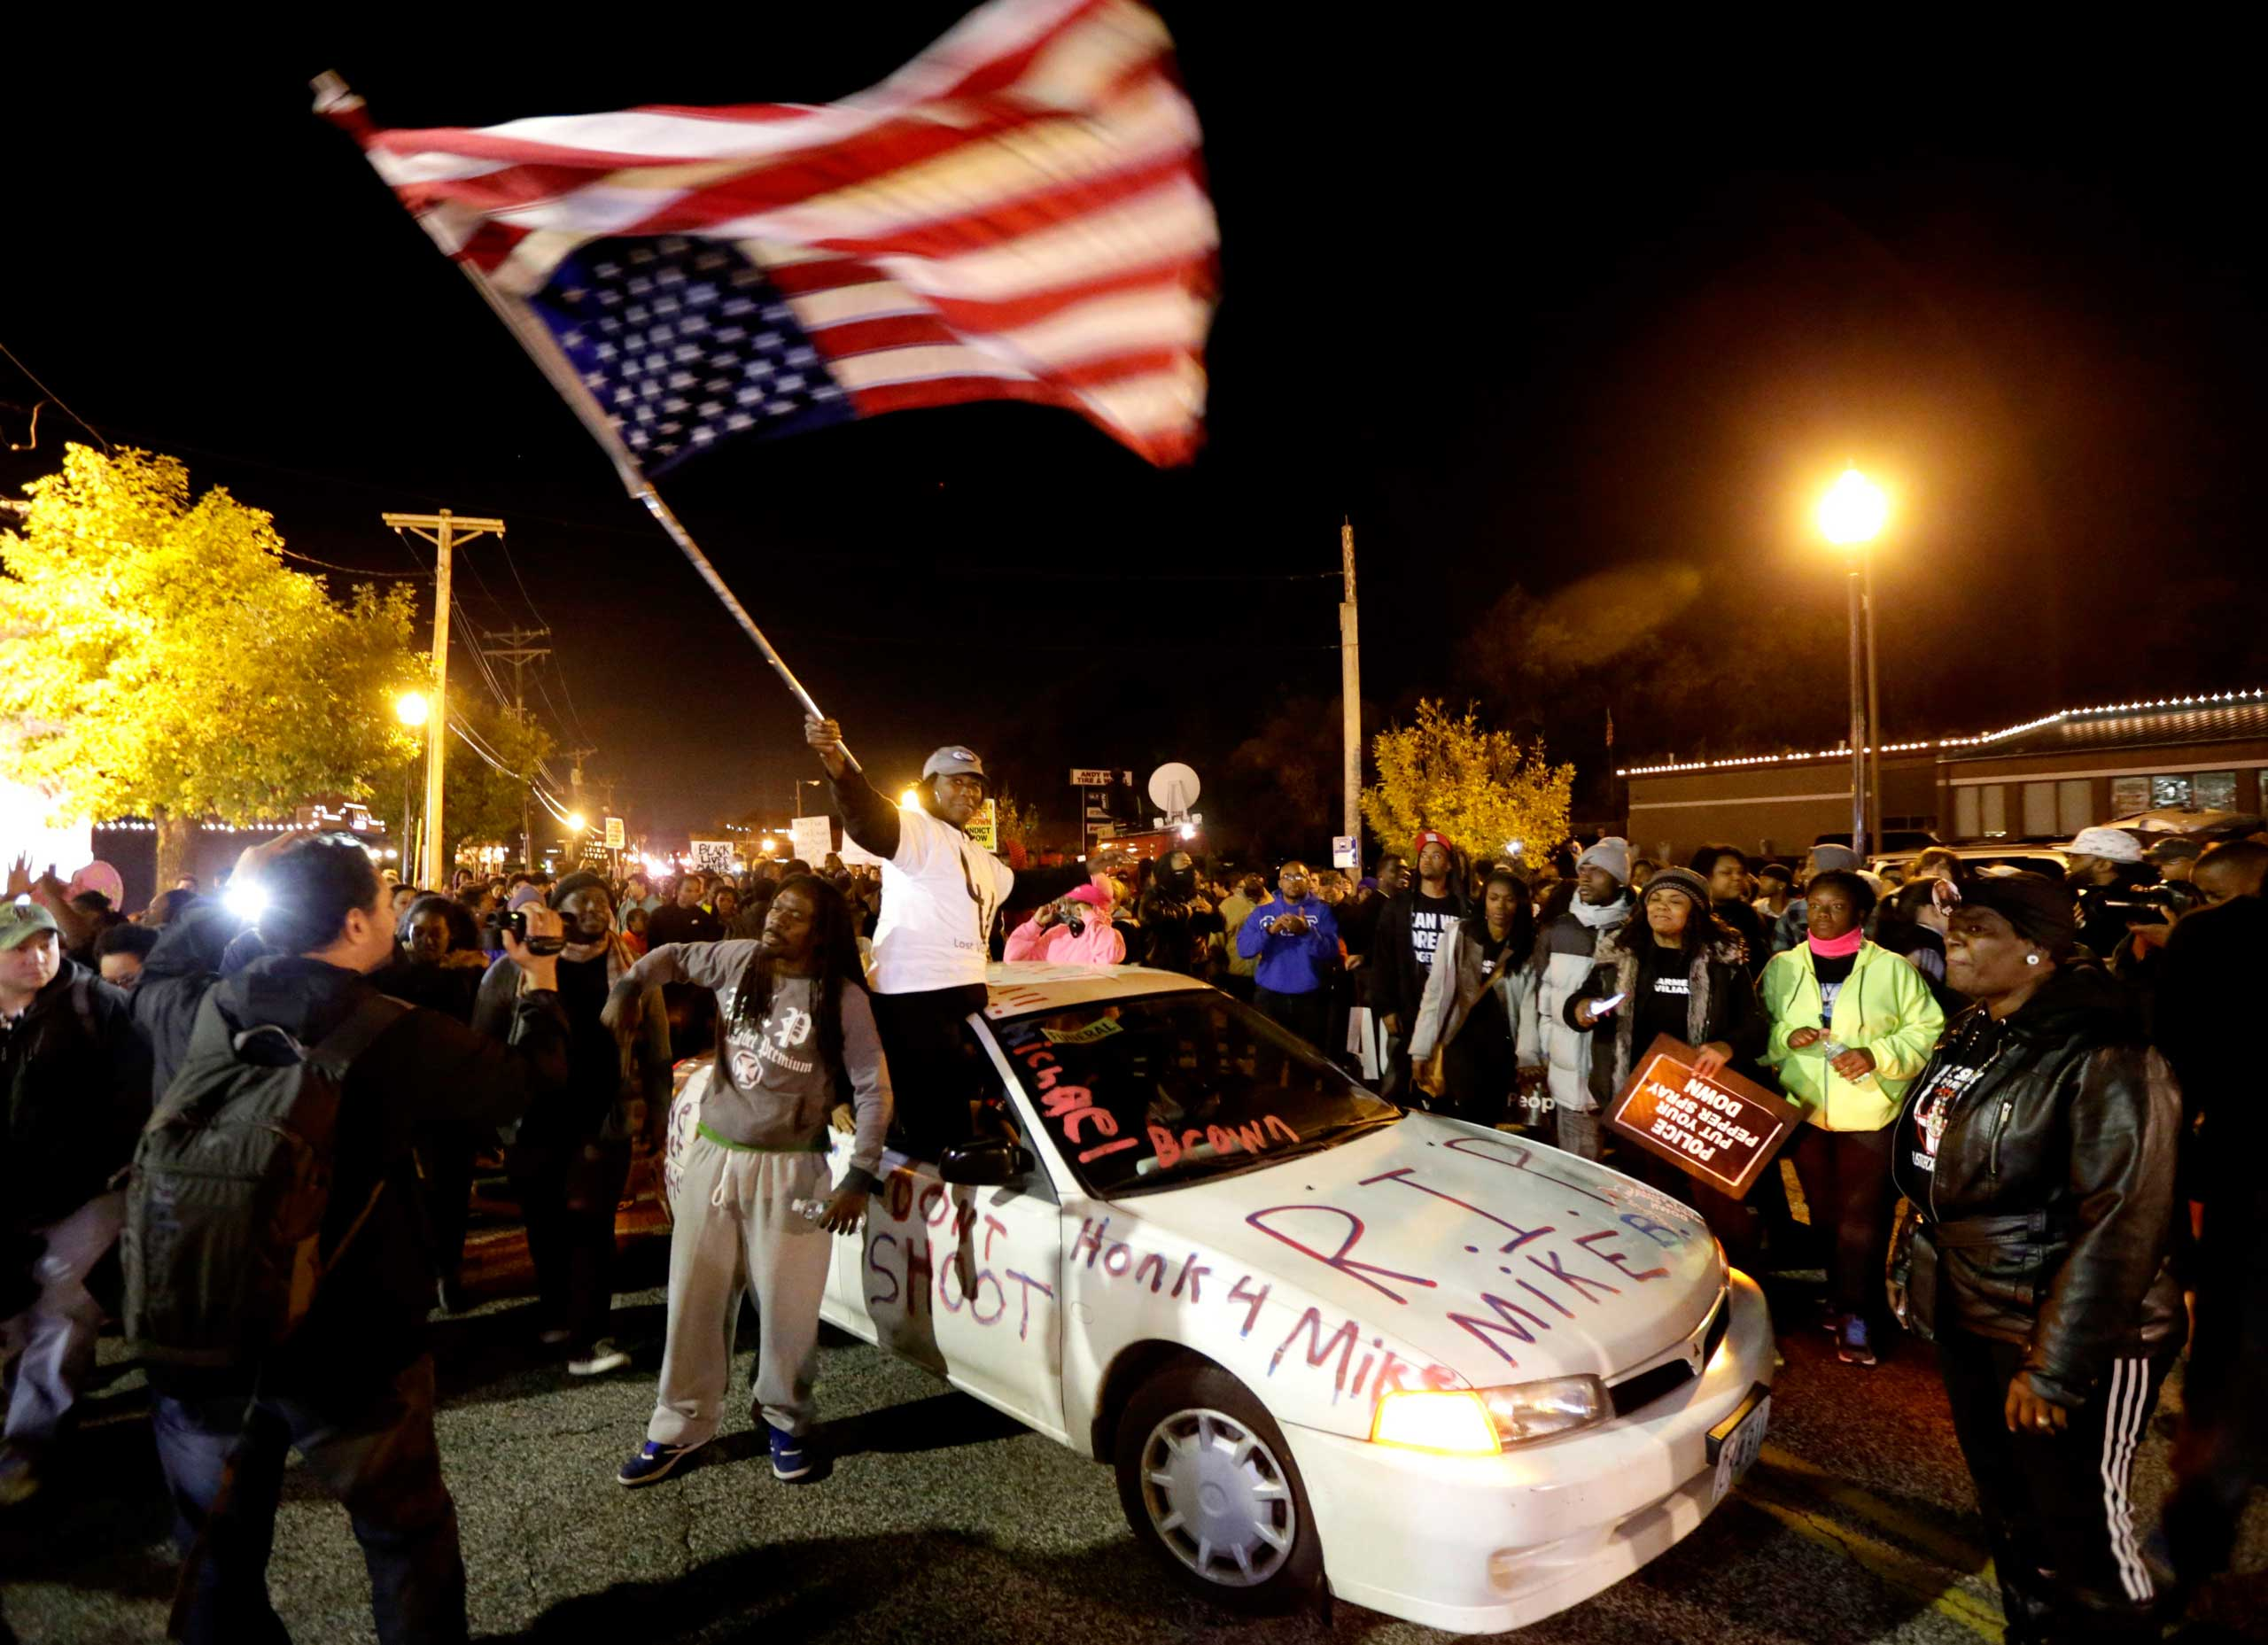 Protesters arrive at the Ferguson Police Department for a rally in Ferguson, Mo. on Oct. 11, 2014.